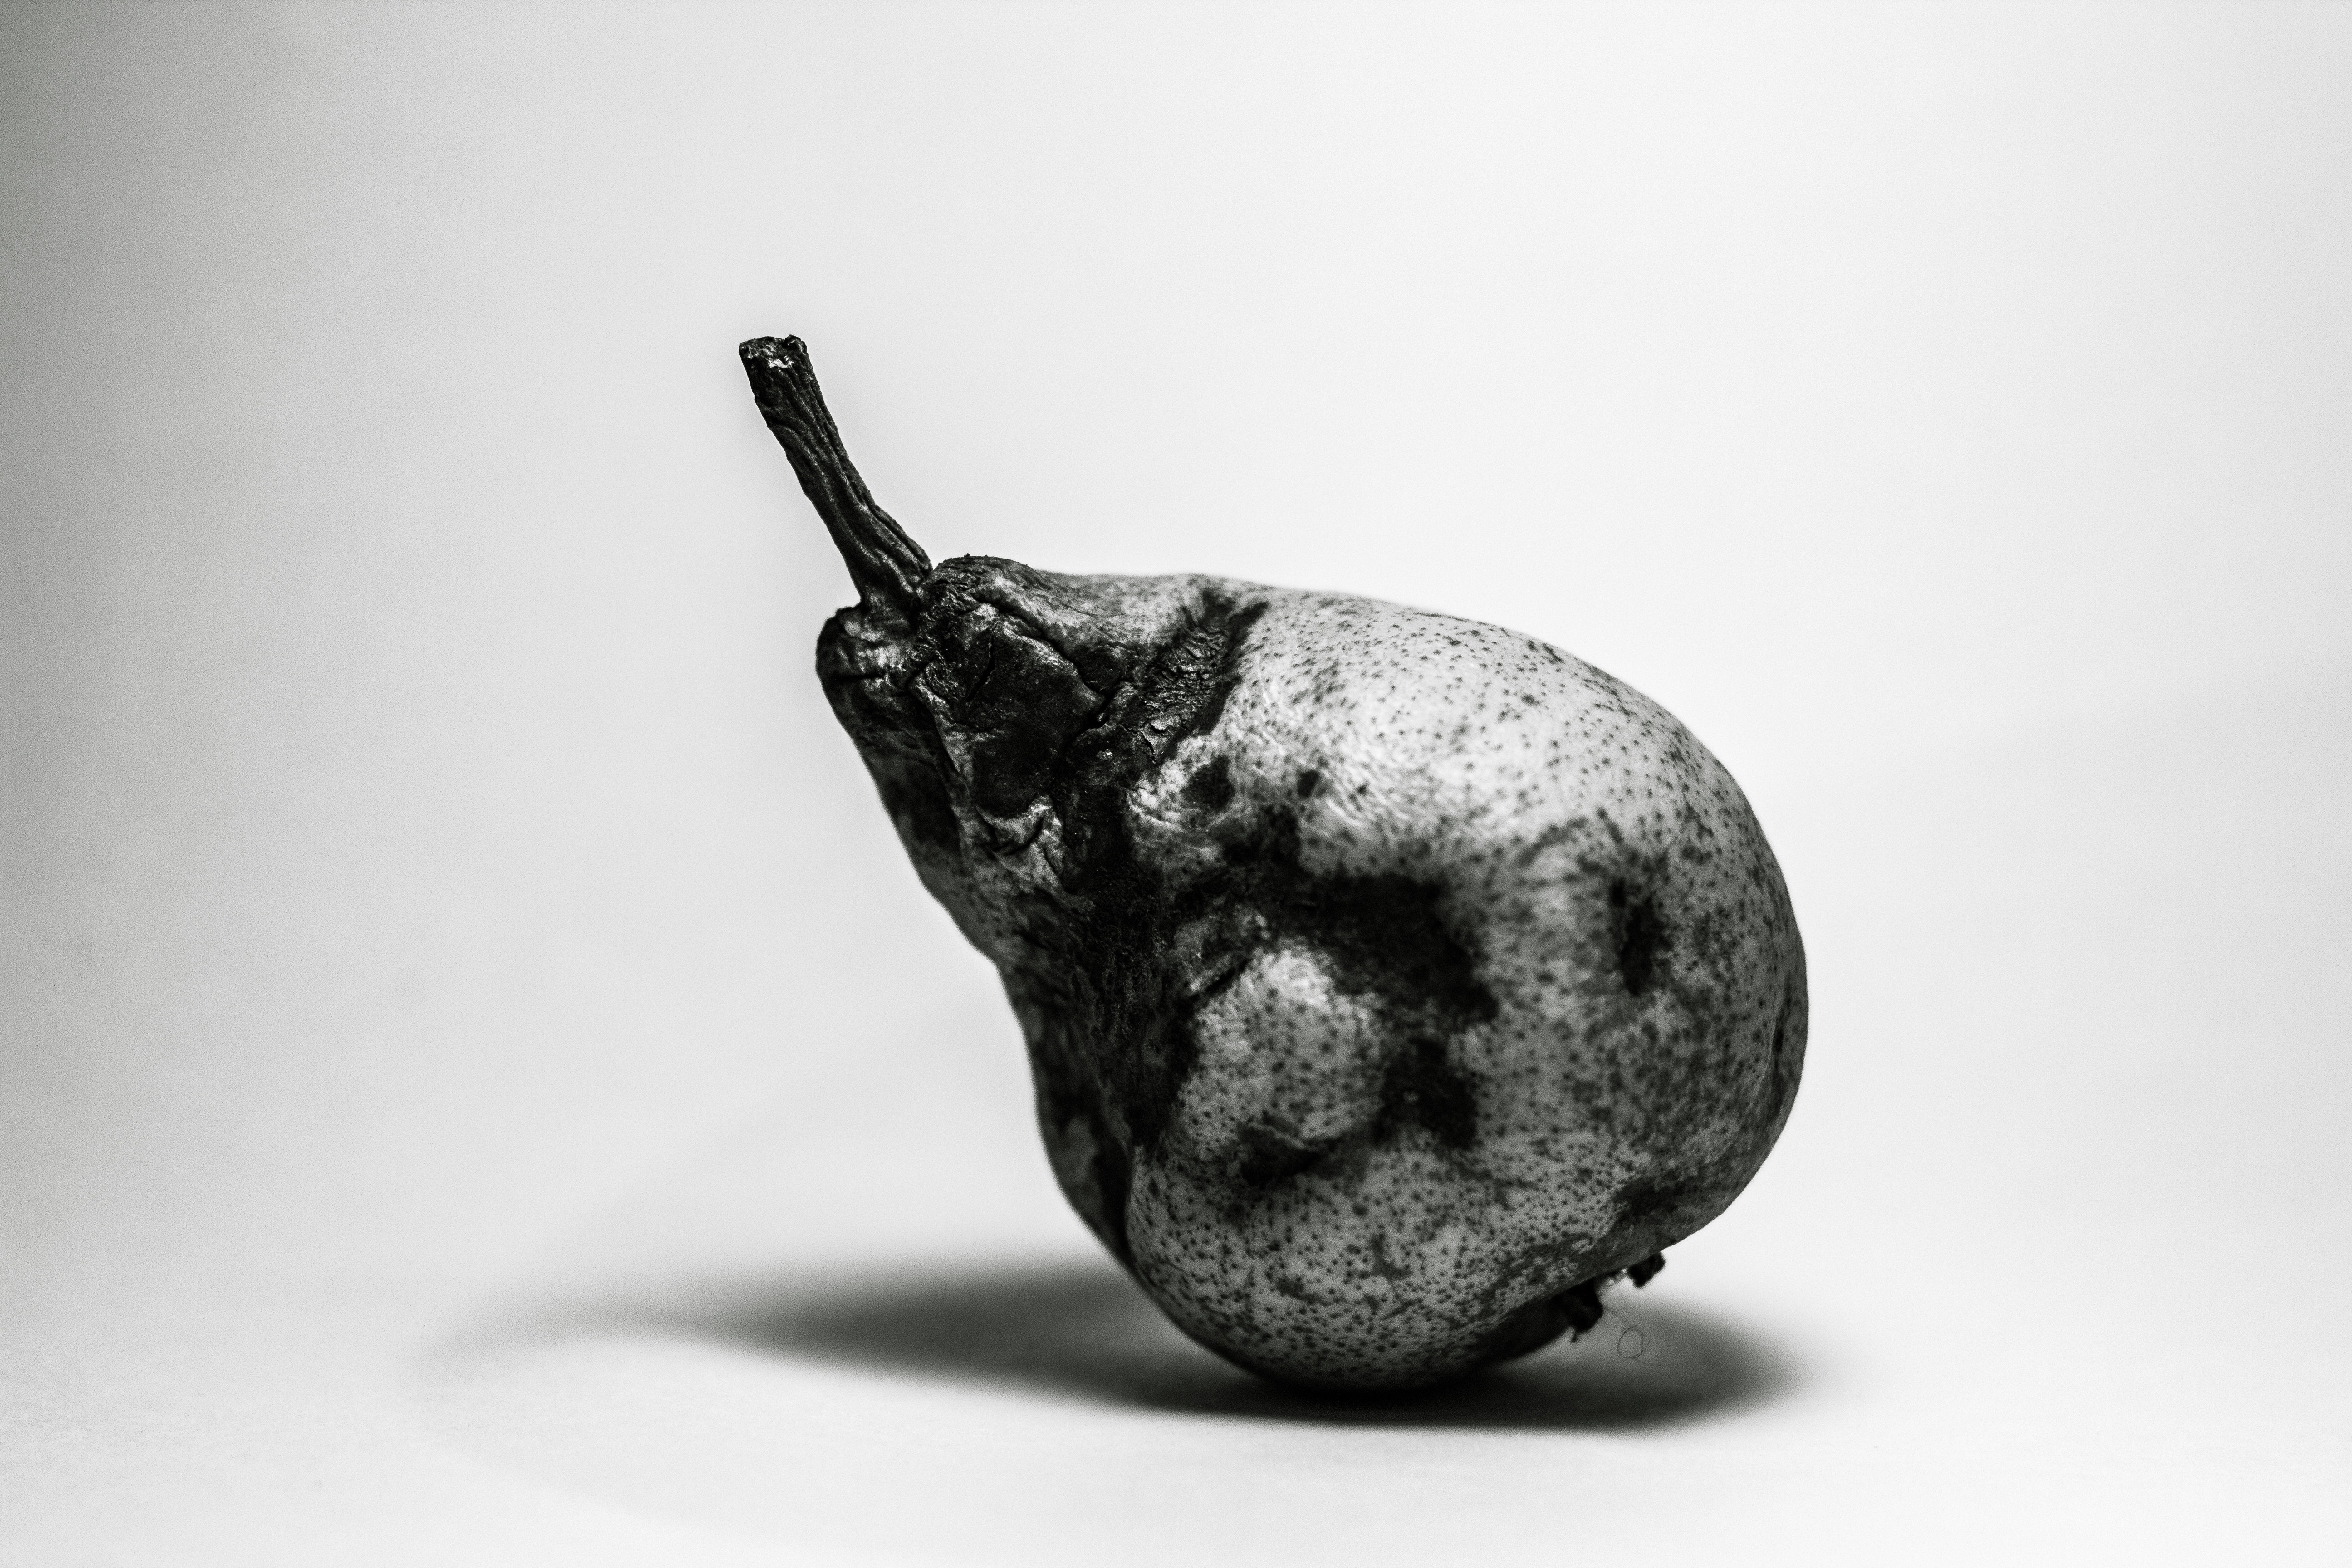 Black And White Photography Fruit